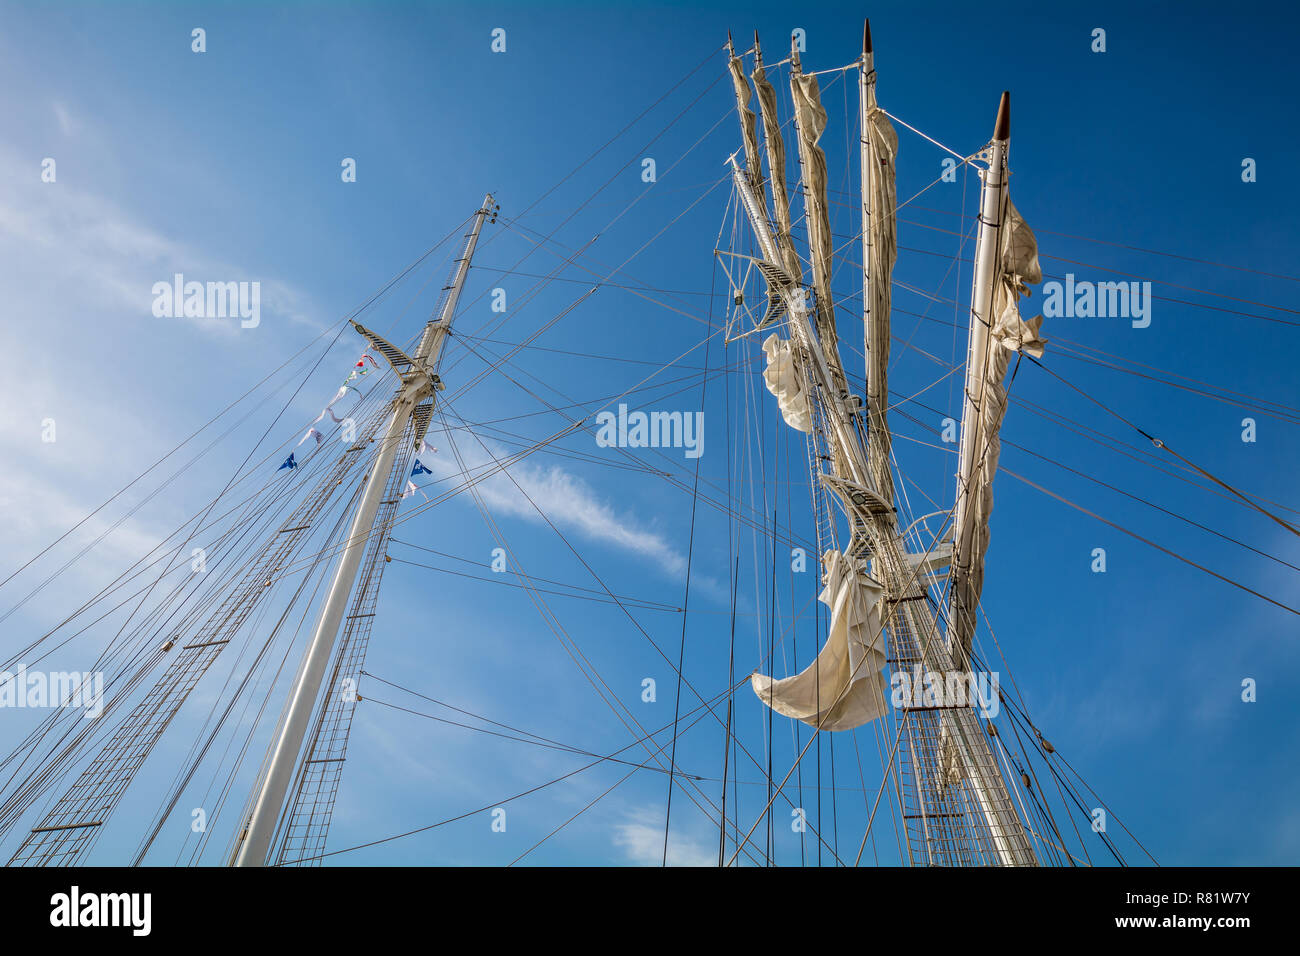 Bottom View of the mast main of Nave ITALIA, which at 61 meters is the largest brigantine in the world, in the porto of Livorno, Tuscany, Italy - Stock Image